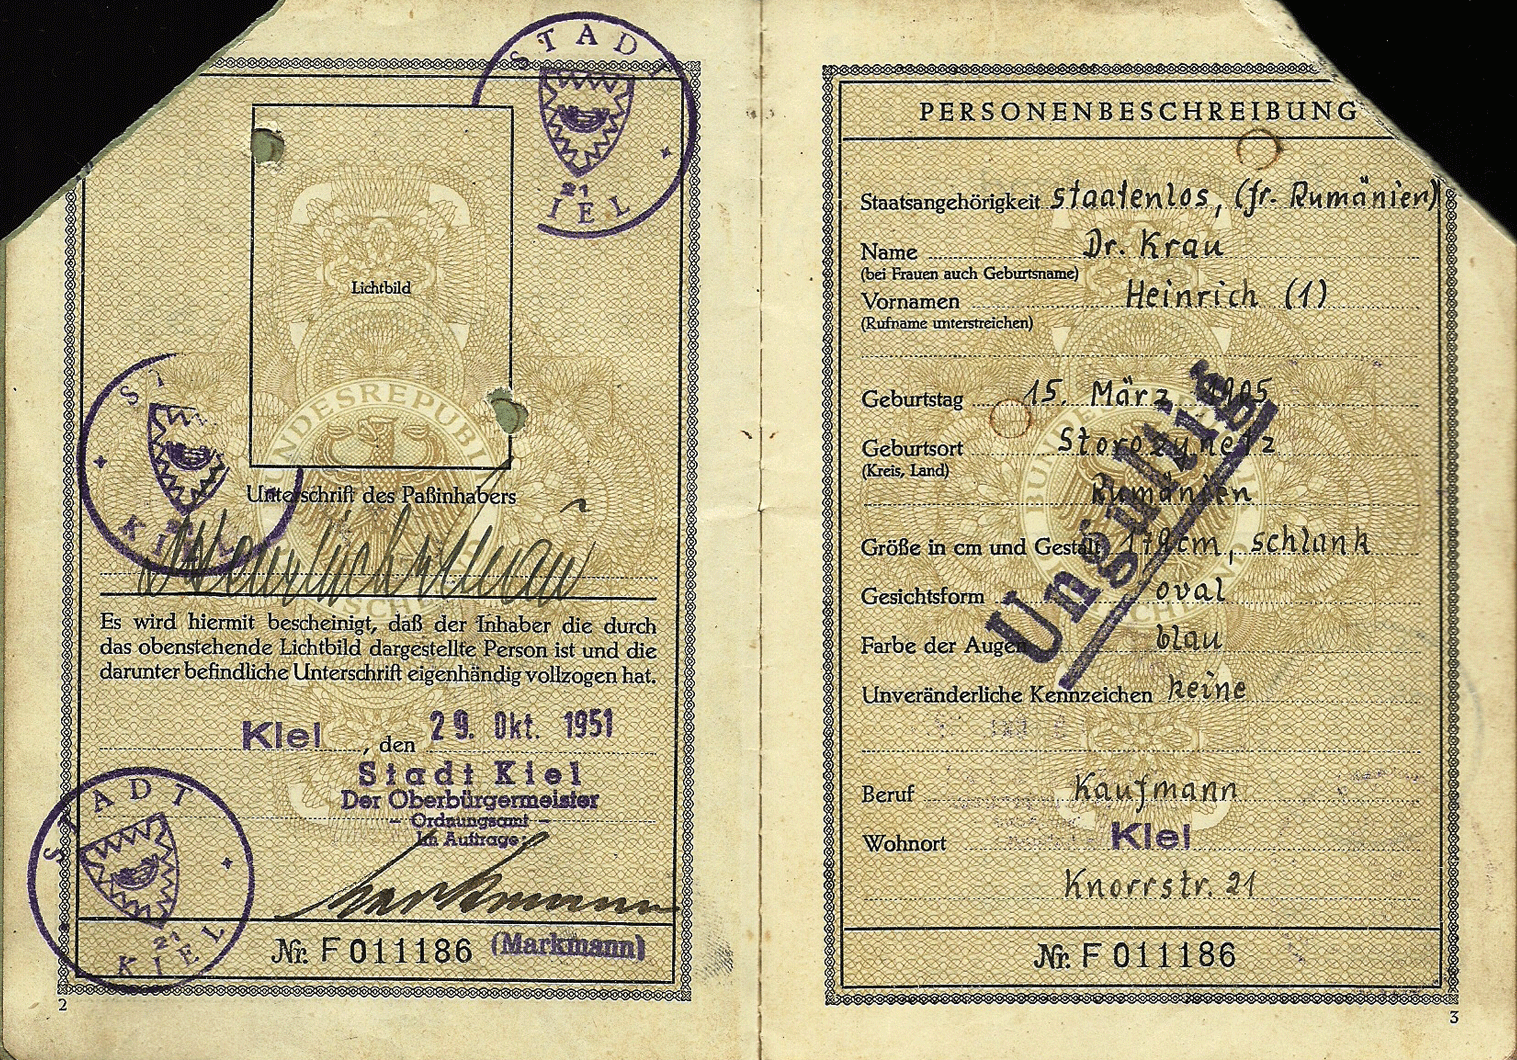 1951 early German passport  Fremdenpass